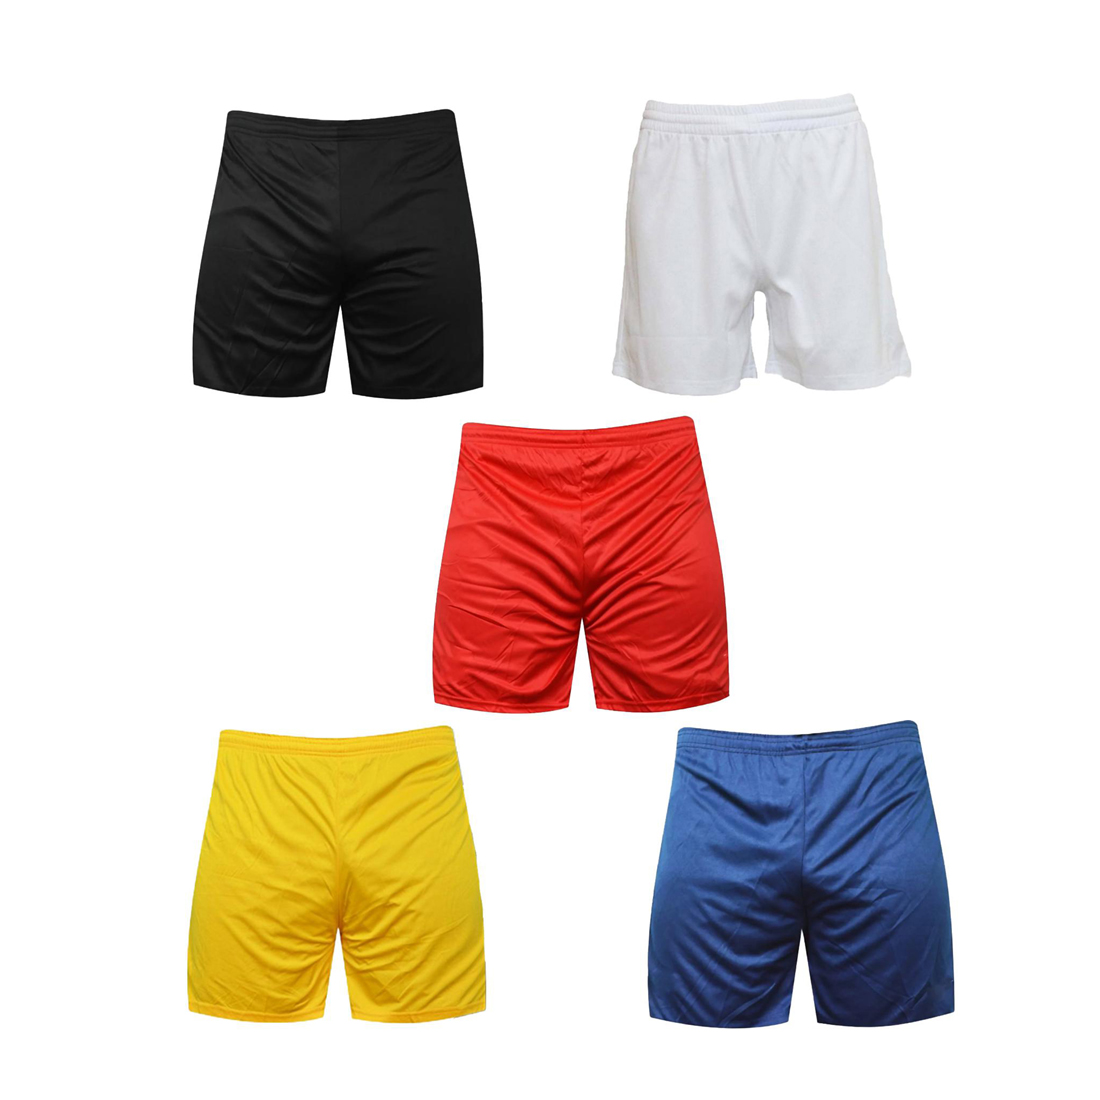 Mj Store Present Polyster Dry Fit Men's Lounge, Beach, Bermuda, Casual, Sports, Night wear, Cycling, Shorts Set 5